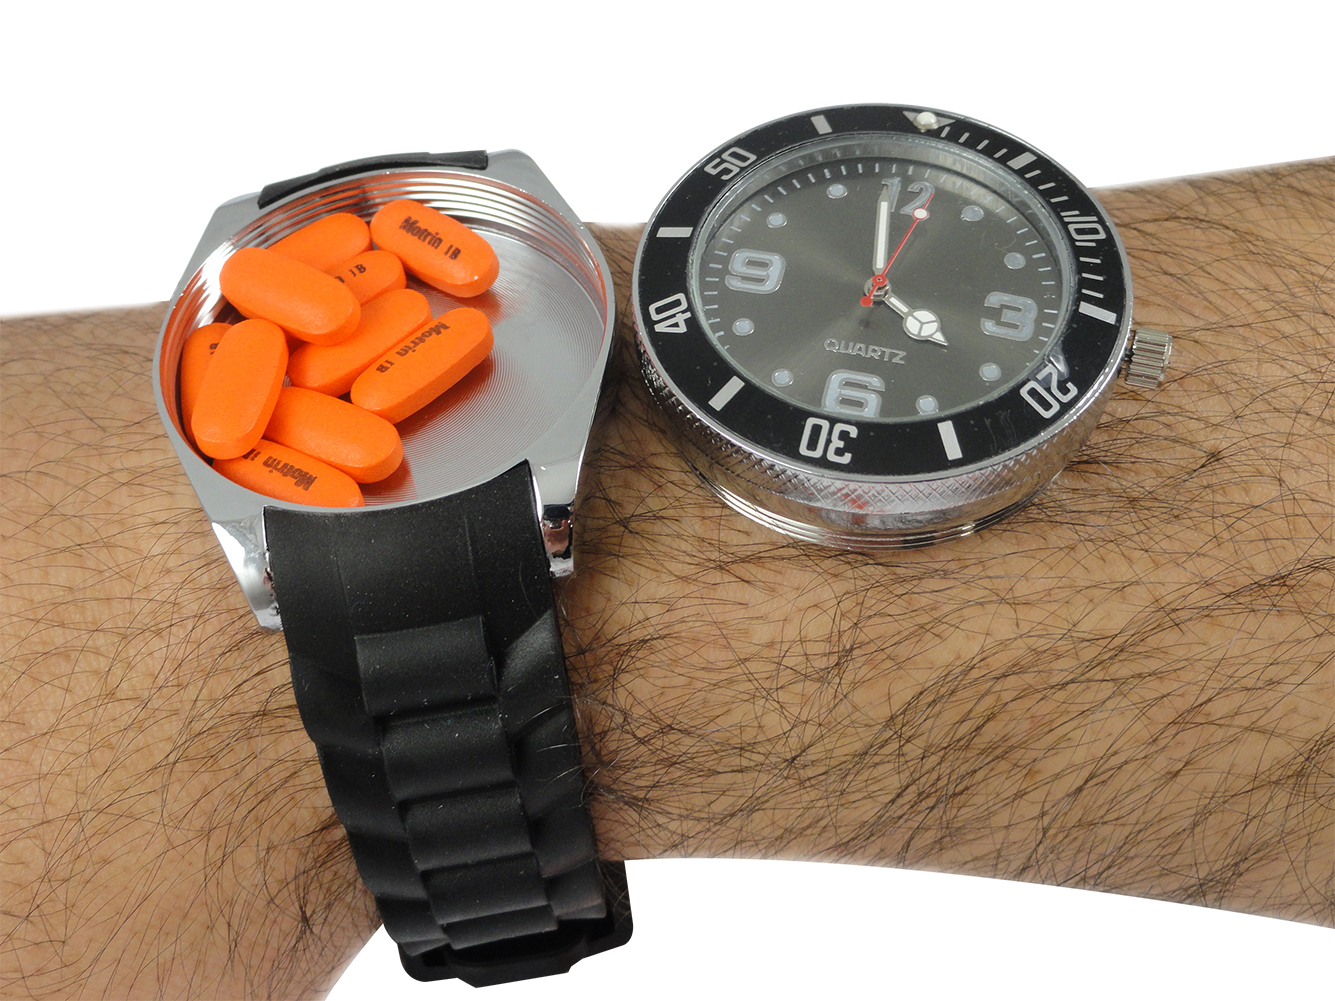 Secret Storage secret hidden stash watch - 2 in 1 watch with secret storage